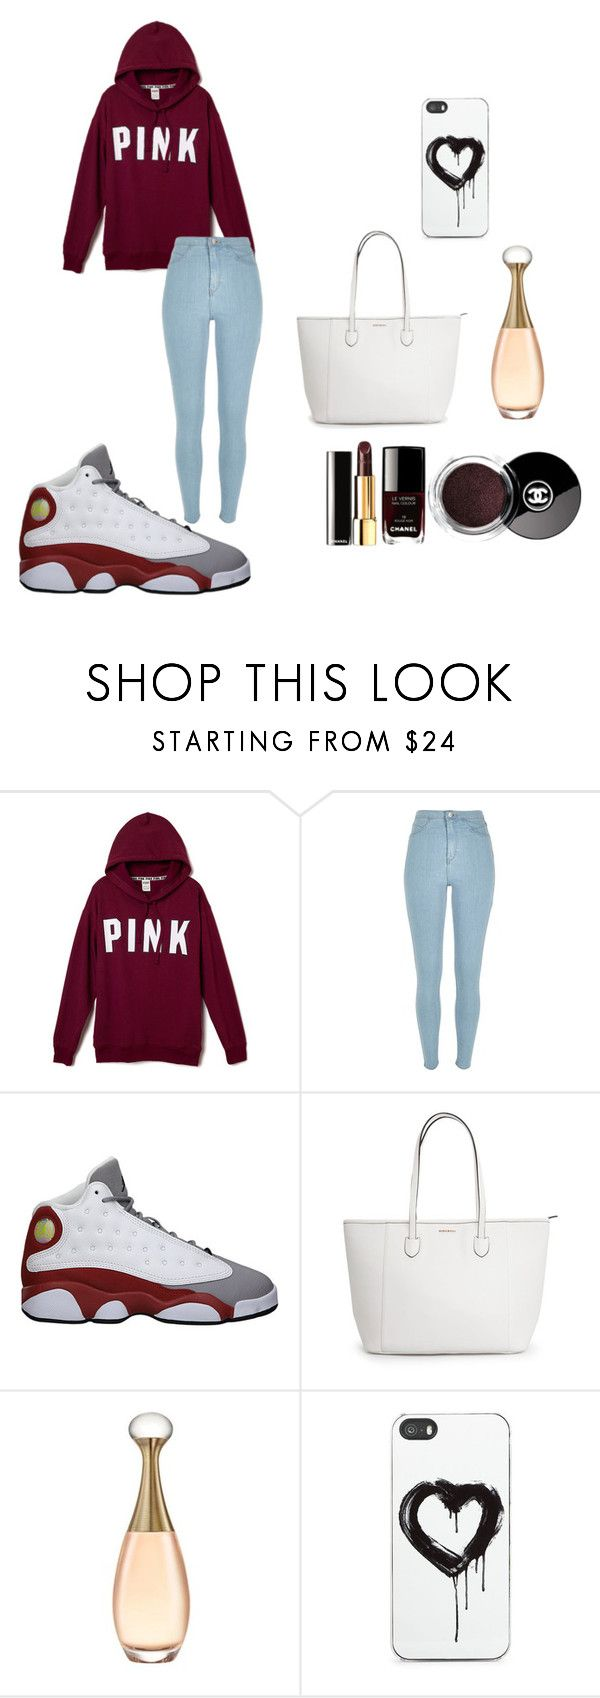 """""""boss"""" by noexes ❤ liked on Polyvore featuring River Island, Retrò, Chanel and Zero Gravity"""